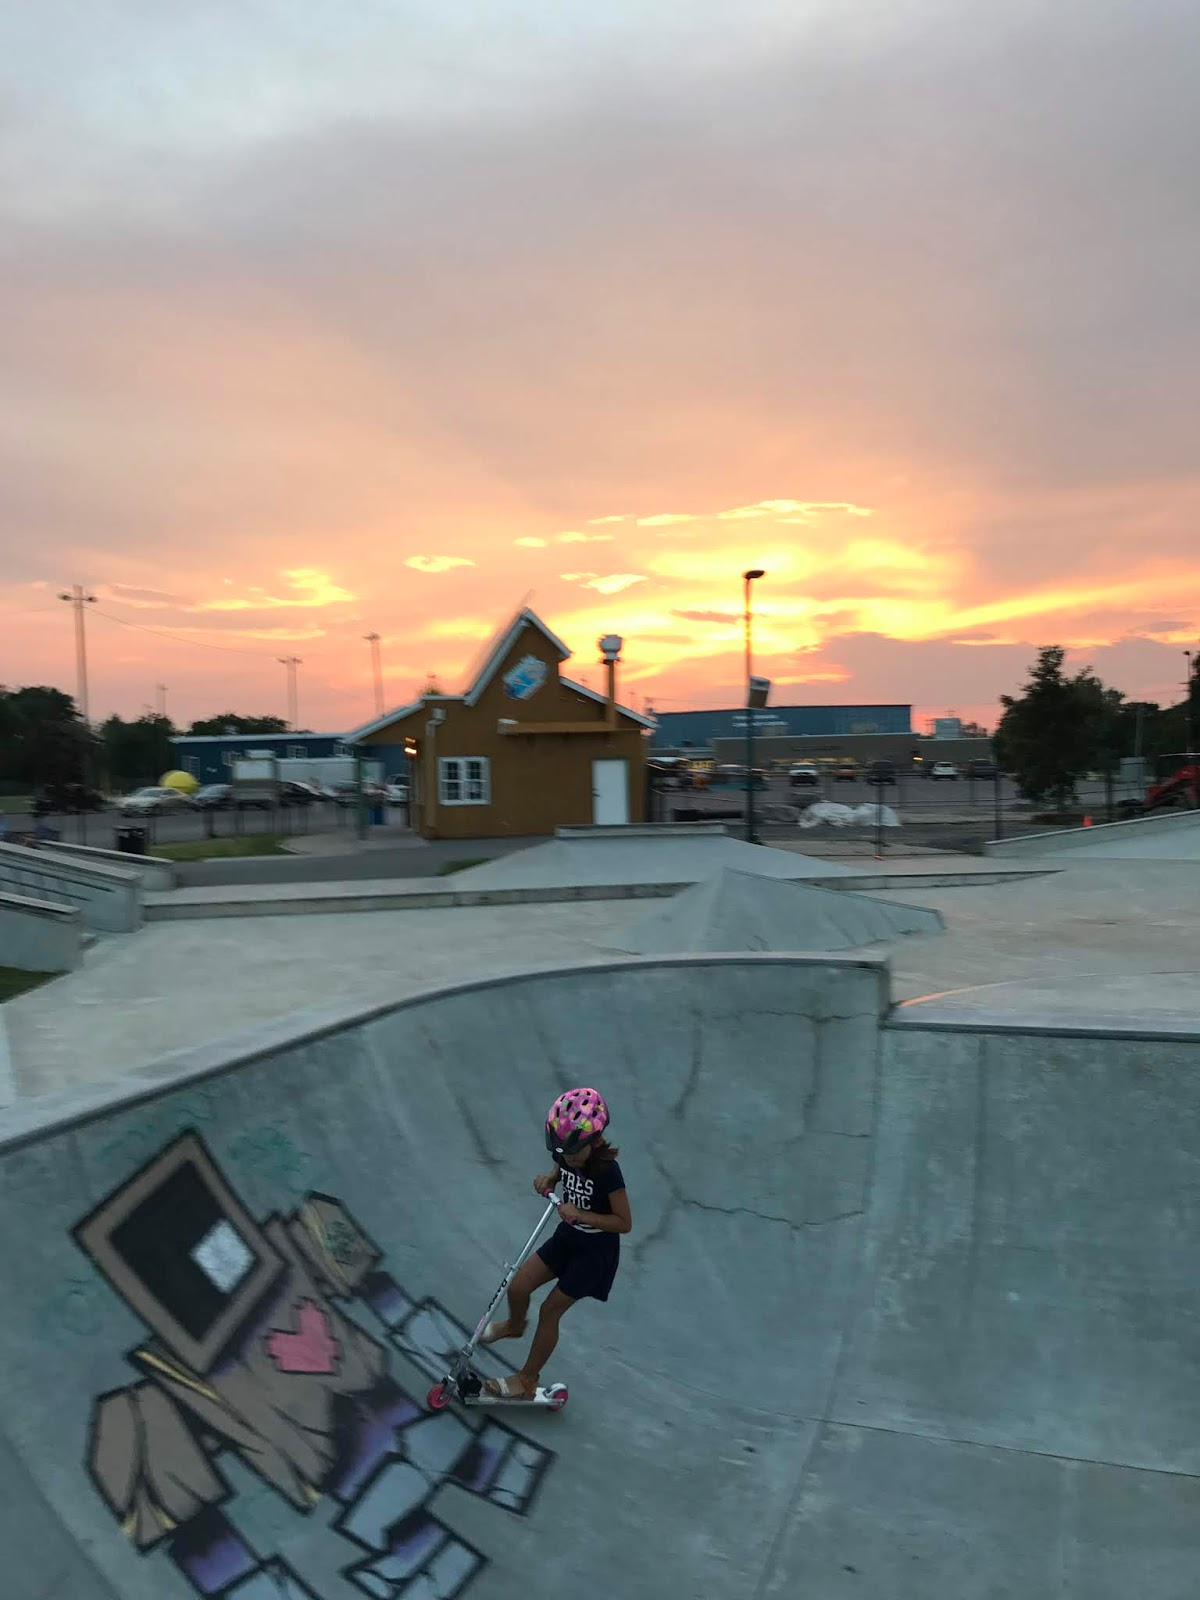 picton skate park, prince edward county family resort, pec cottage, prince edward county with kids